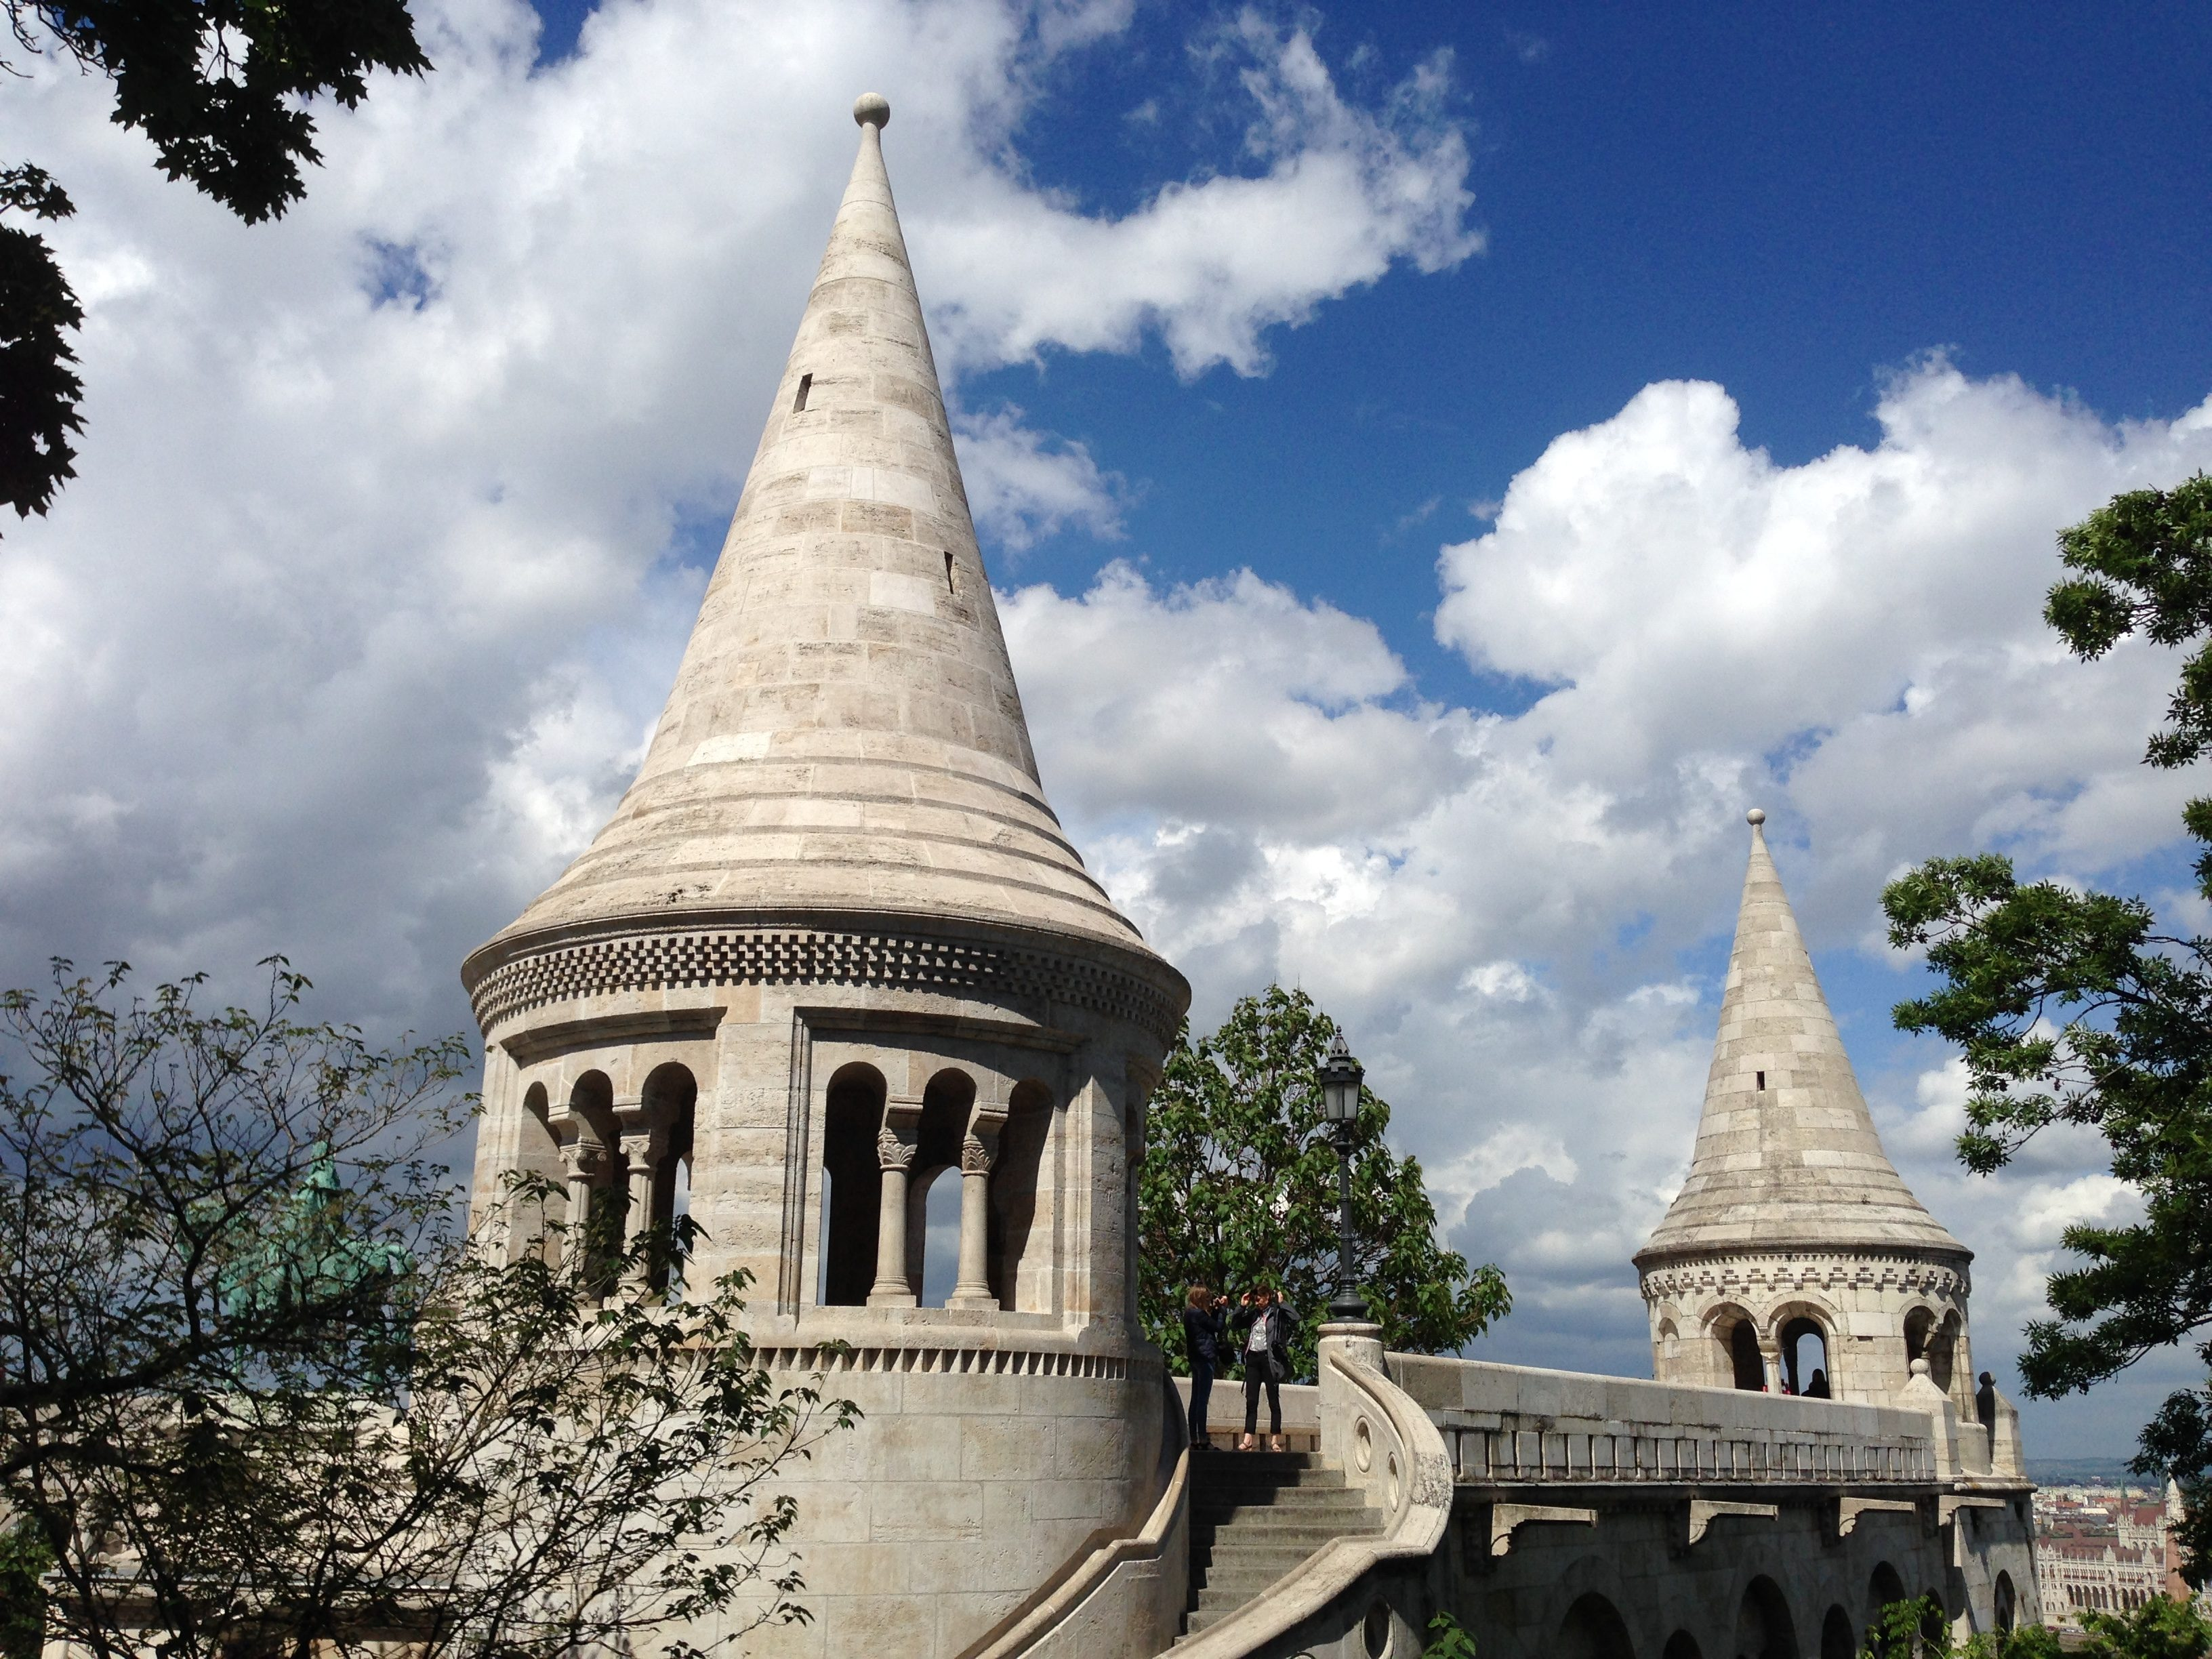 Like a Dinsey castle, Fisherman's Bastion always captures the imagination of anyone on a visit to Budapest.